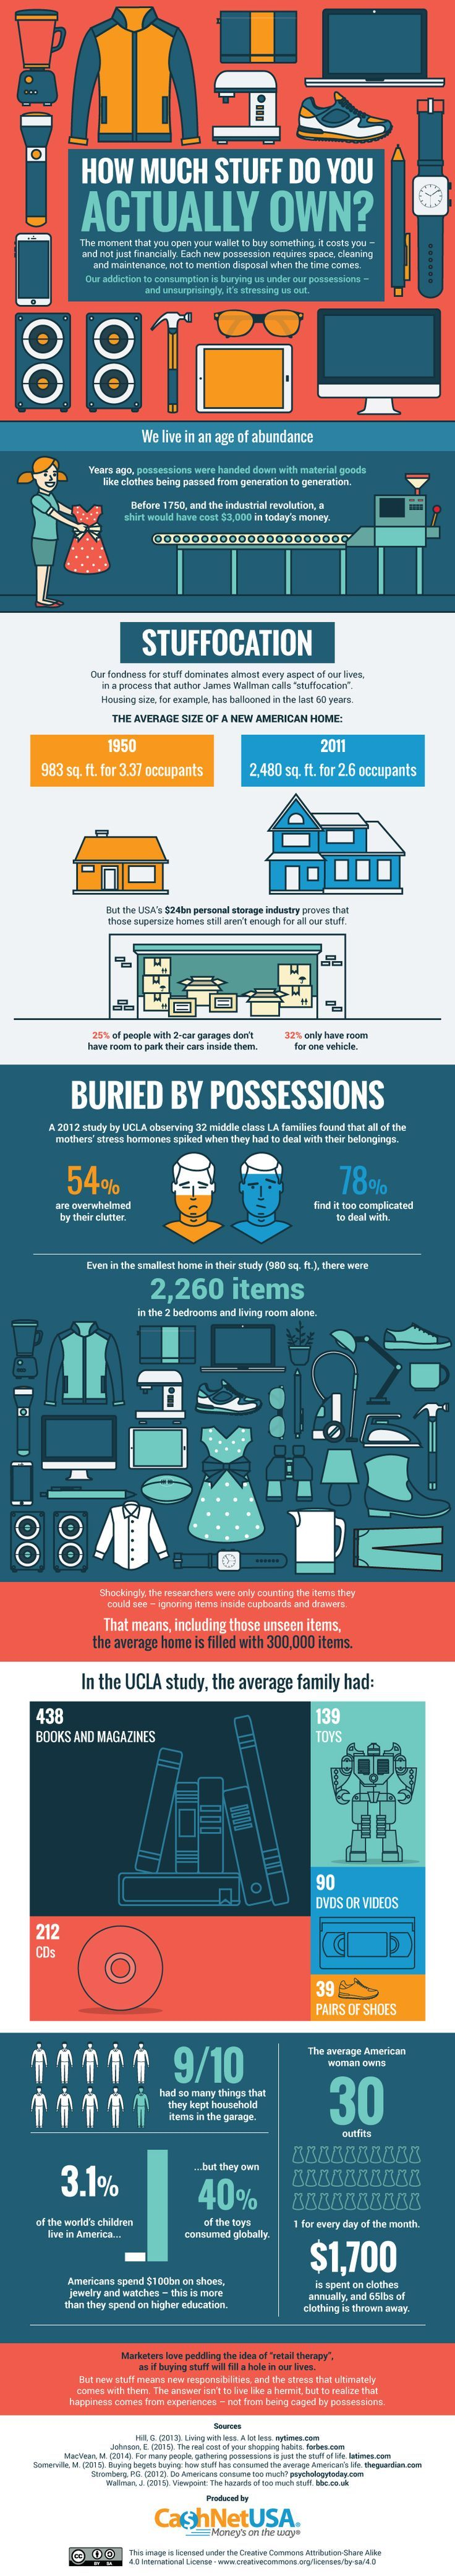 How Much Stuff Do You Actually Own? #Infographic #LifeStyle #Finance